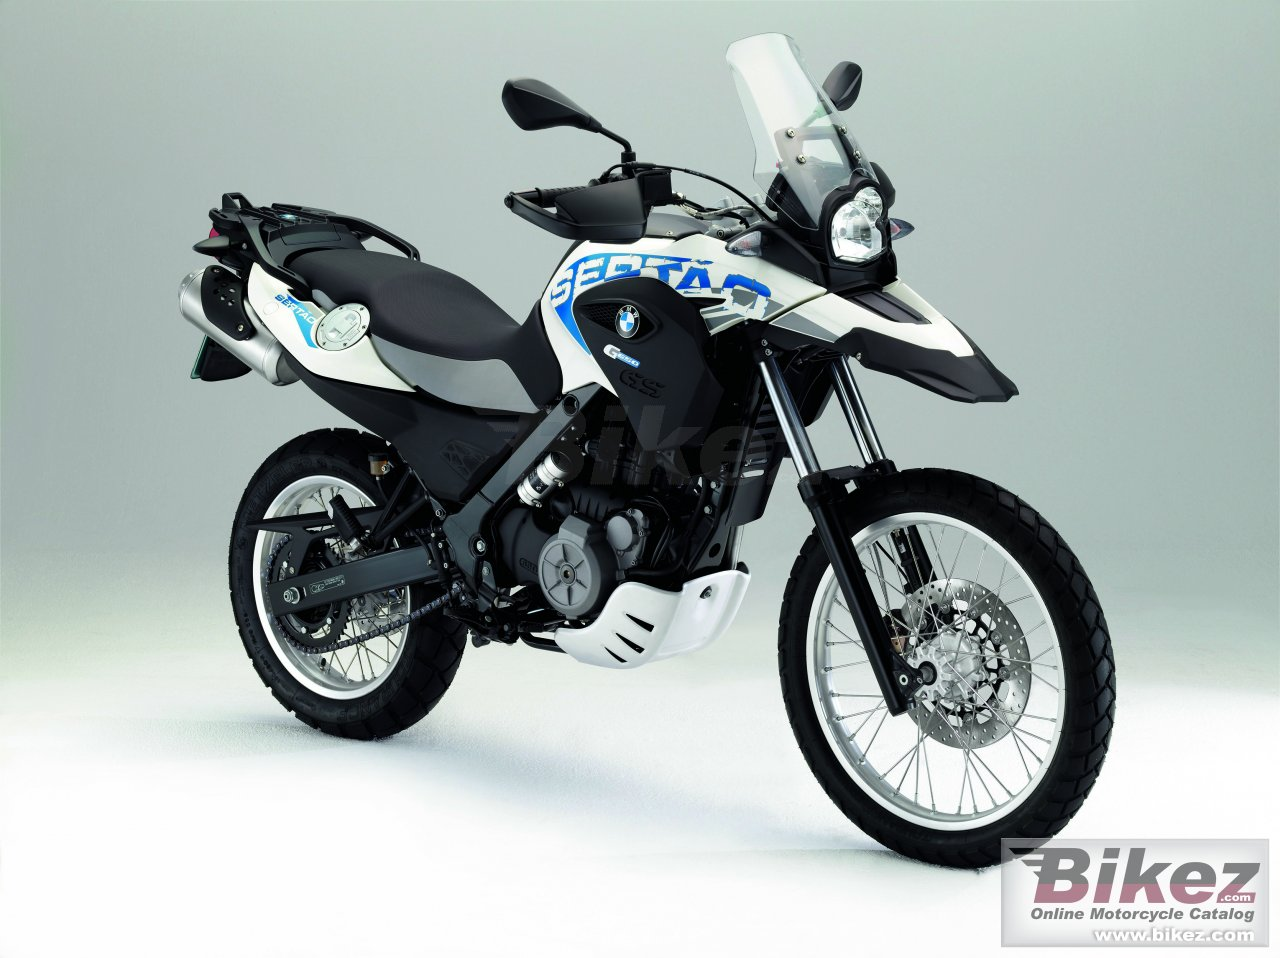 Big BMW g 650 gs sertao picture and wallpaper from Bikez.com